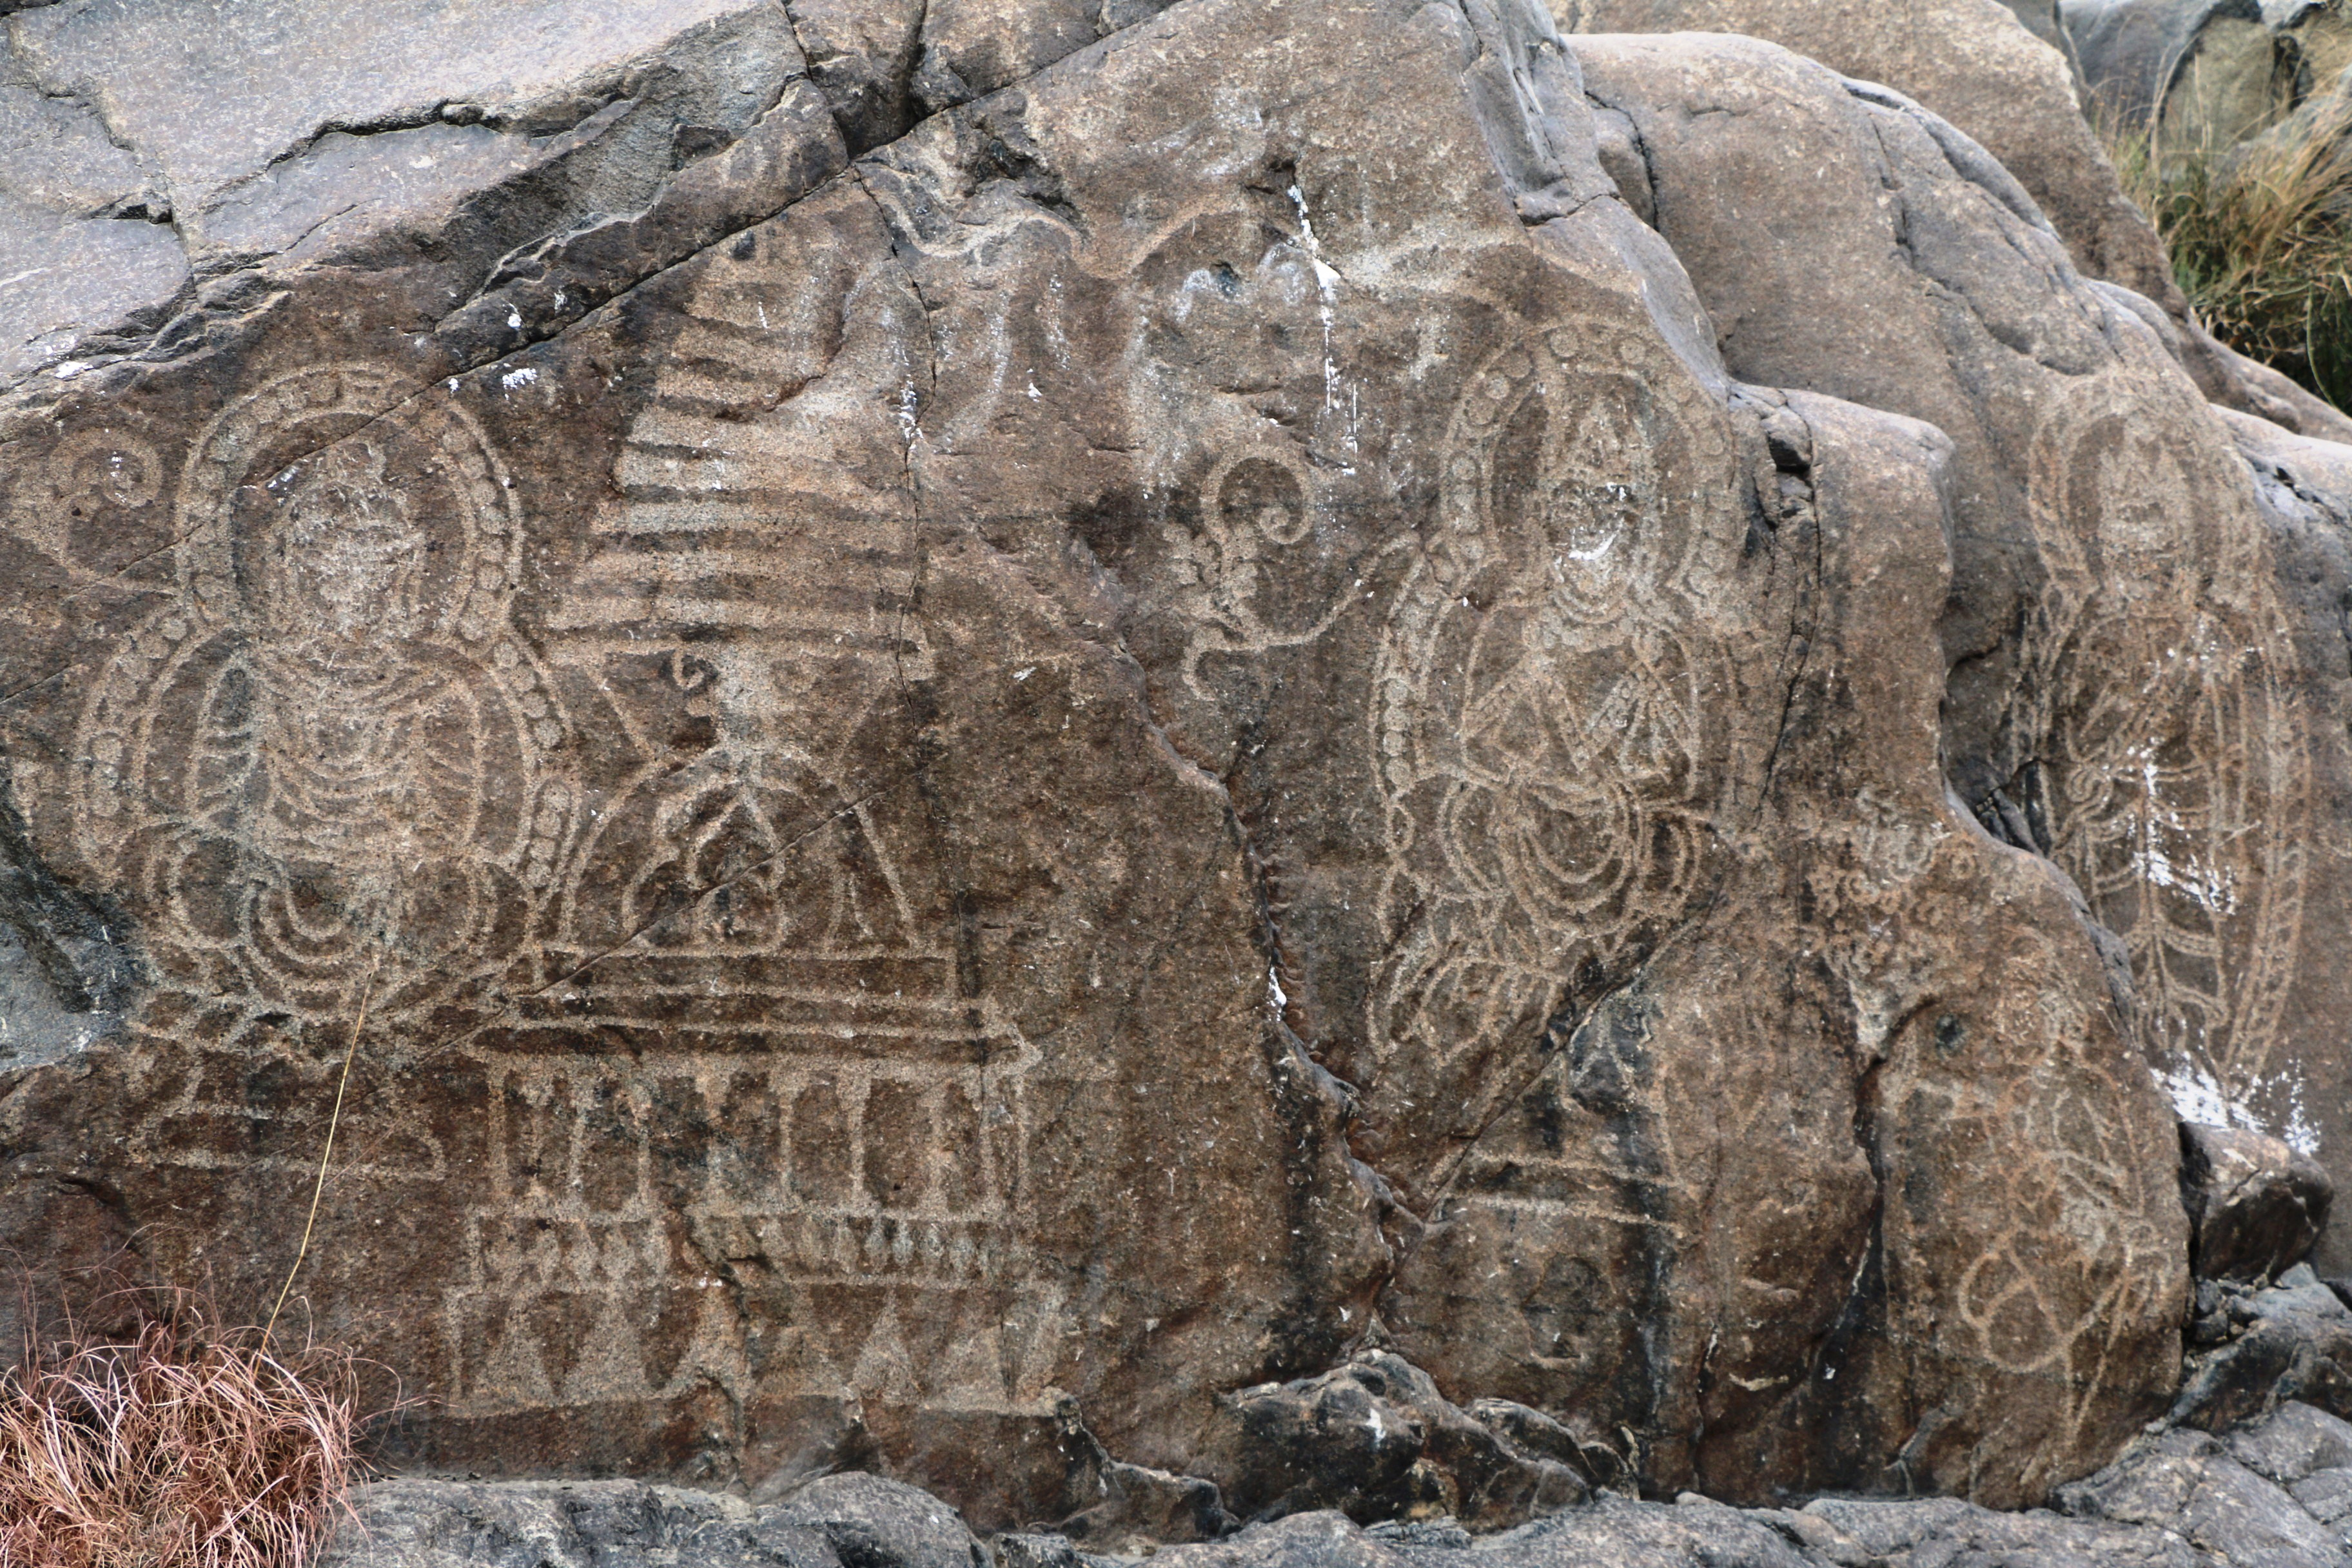 Chilas vandals destroy centuries old rock carvings